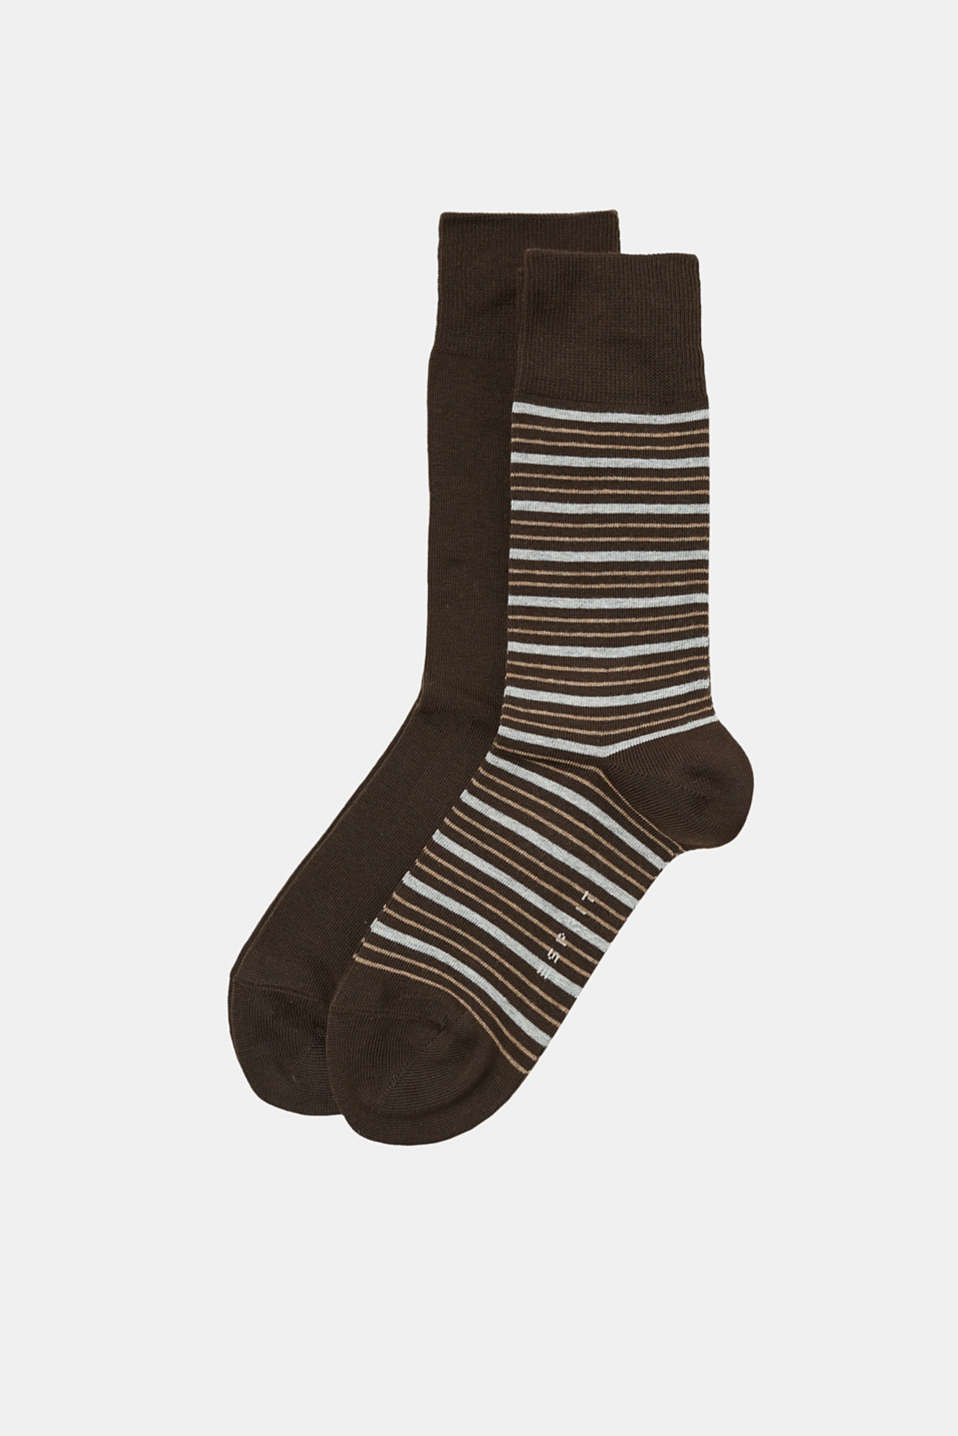 Plain and striped socks with extra wide comfort cuffs, blended cotton